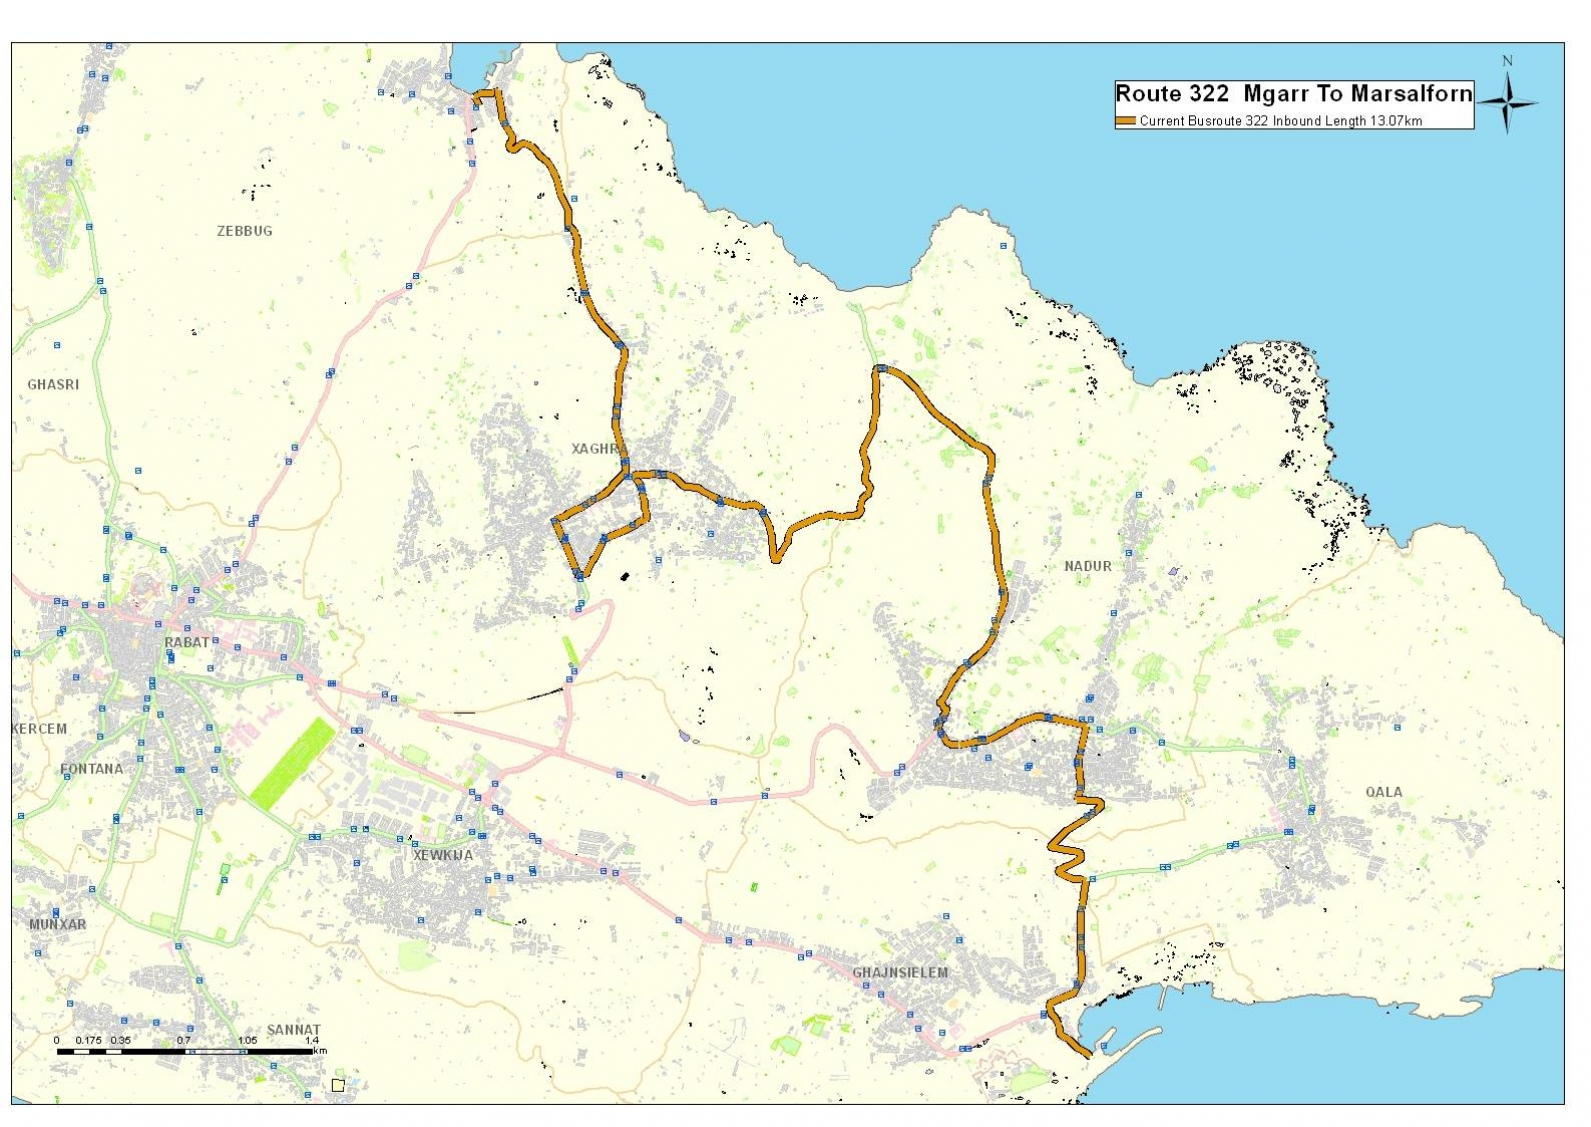 Land-current-network-routes-and-schedules-Gozo-27